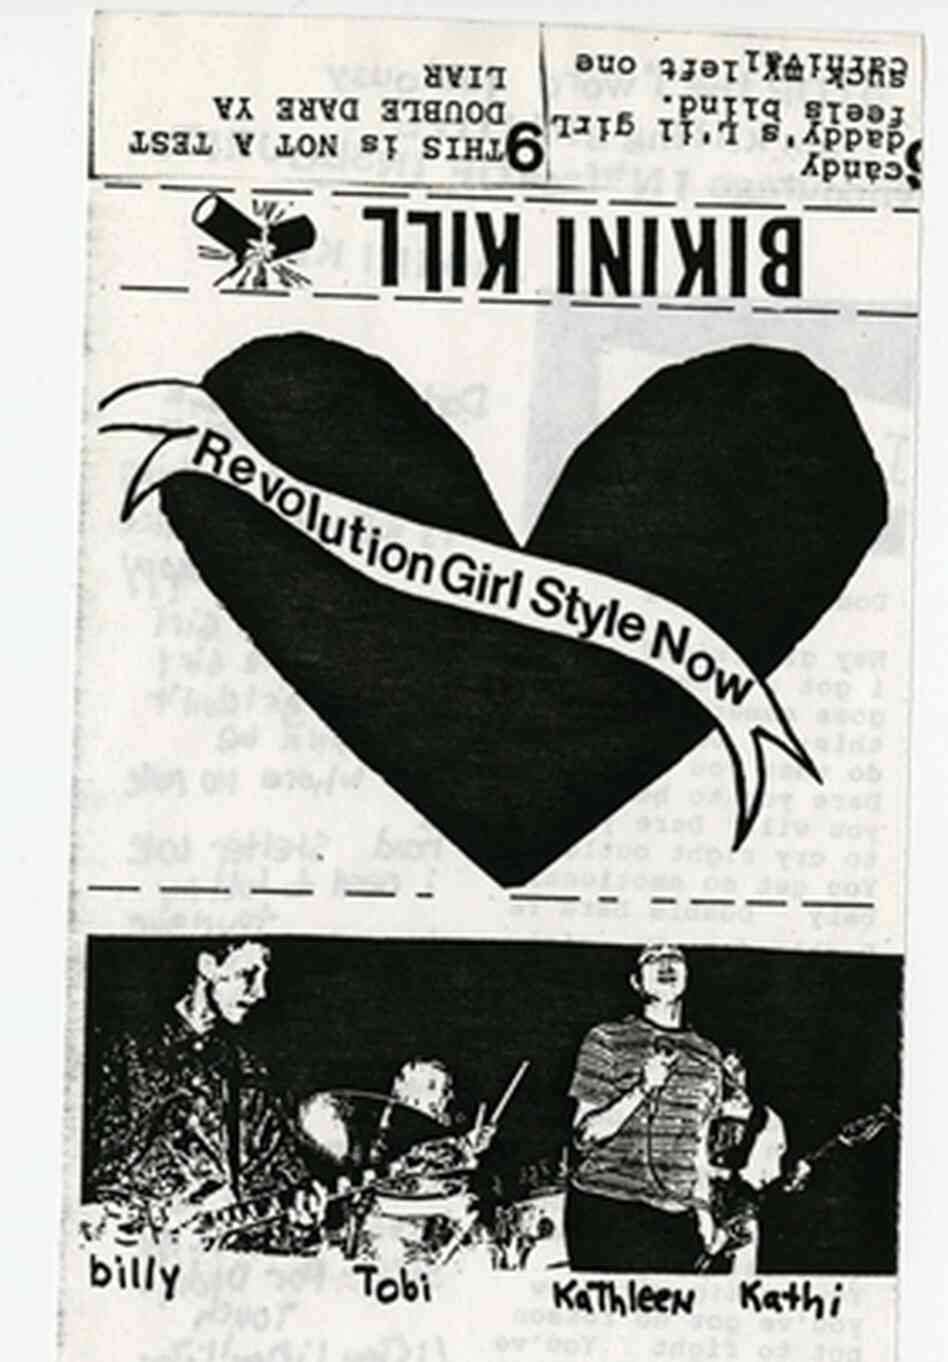 The cassette cover of Bikini Kill's Revolution Girl Style Now. [NOTE: Enlargement contains lyrics that include profanity.]